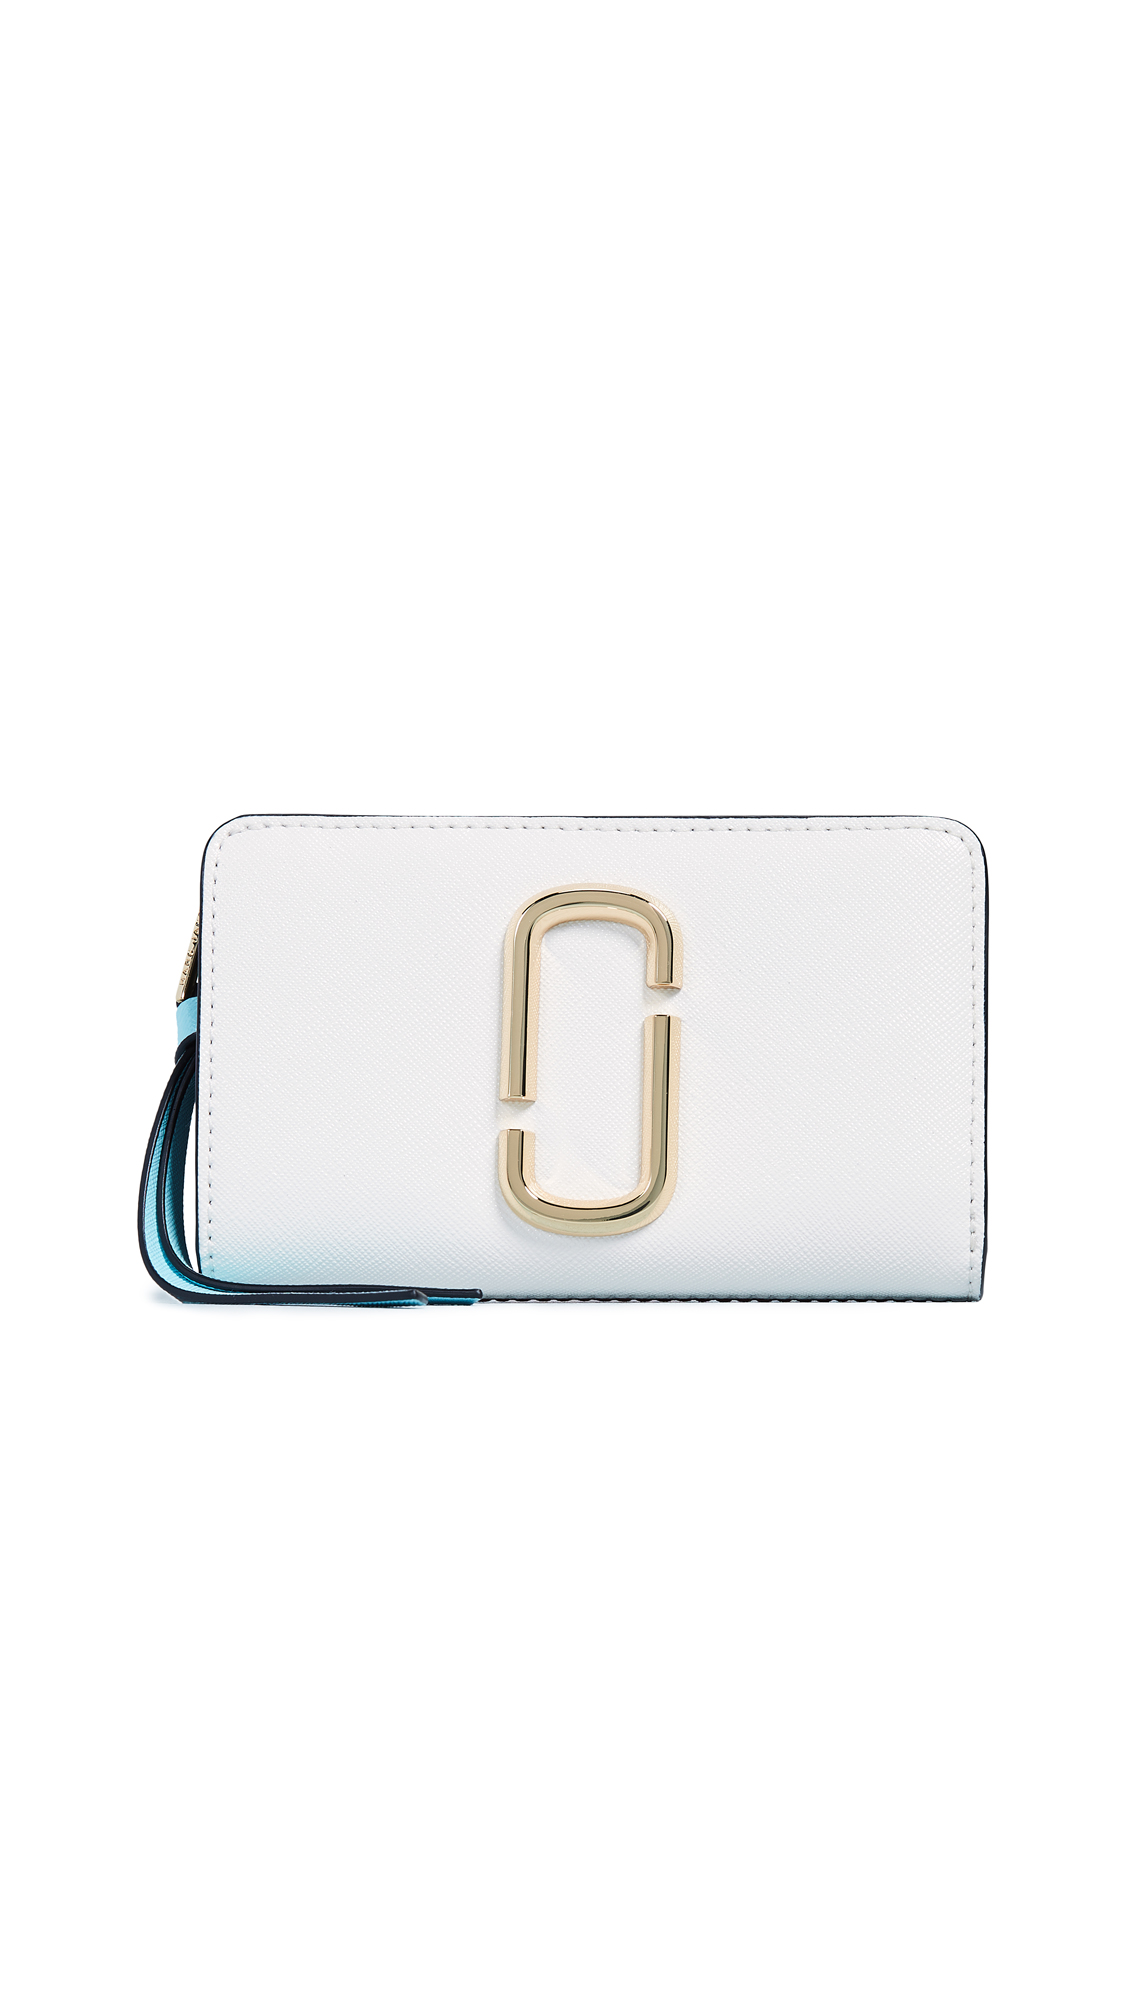 Snapshot Compact Wallet in White